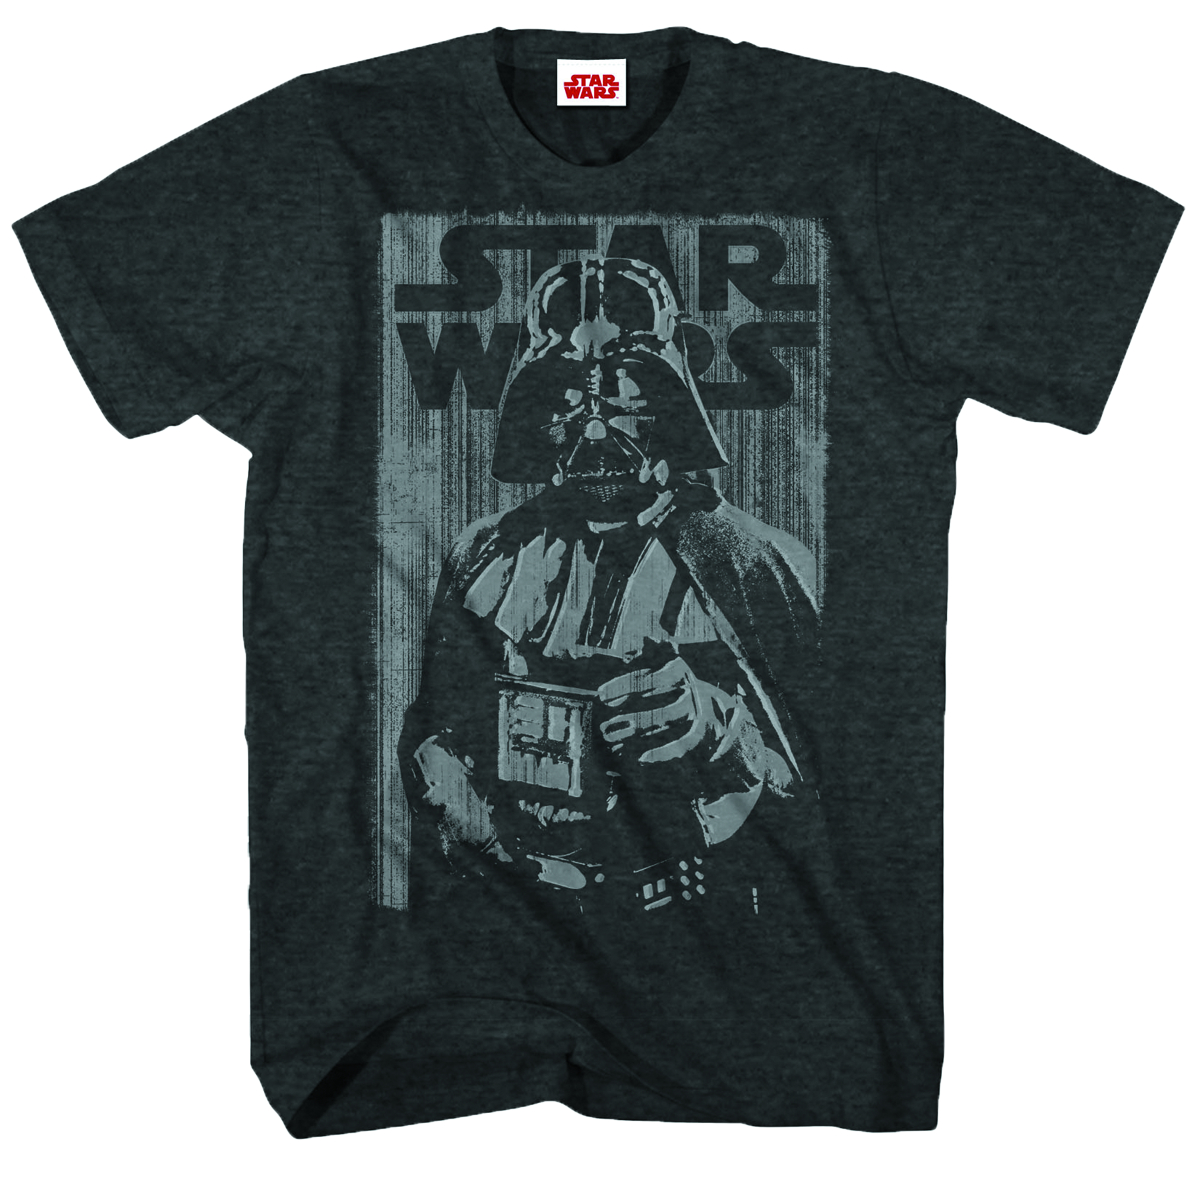 STAR WARS COOL AS ME PX BLK HEATHER T/S XL